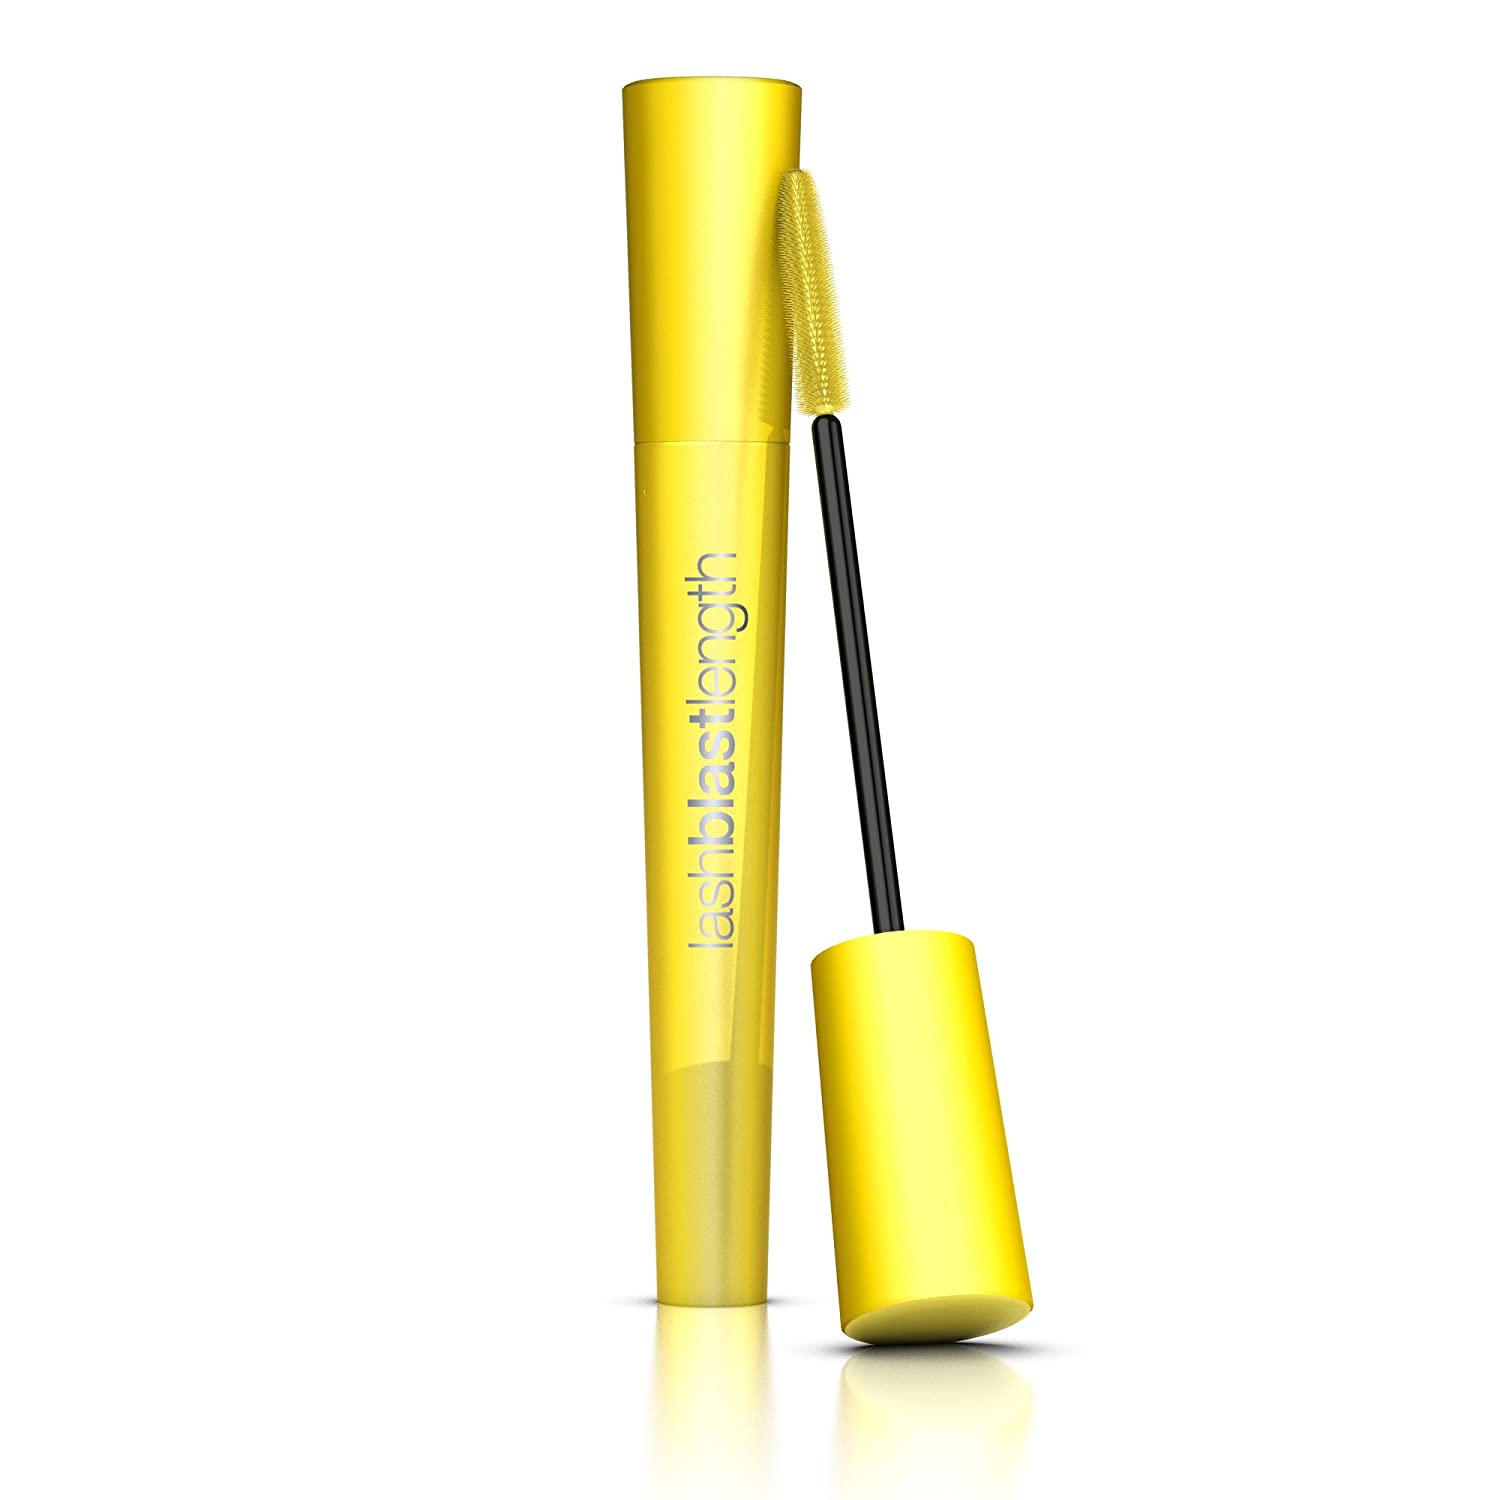 Amazon.com : CoverGirl LashBlast Length Mascara Very Black 800, 0.21-Ounce Tube : Beauty